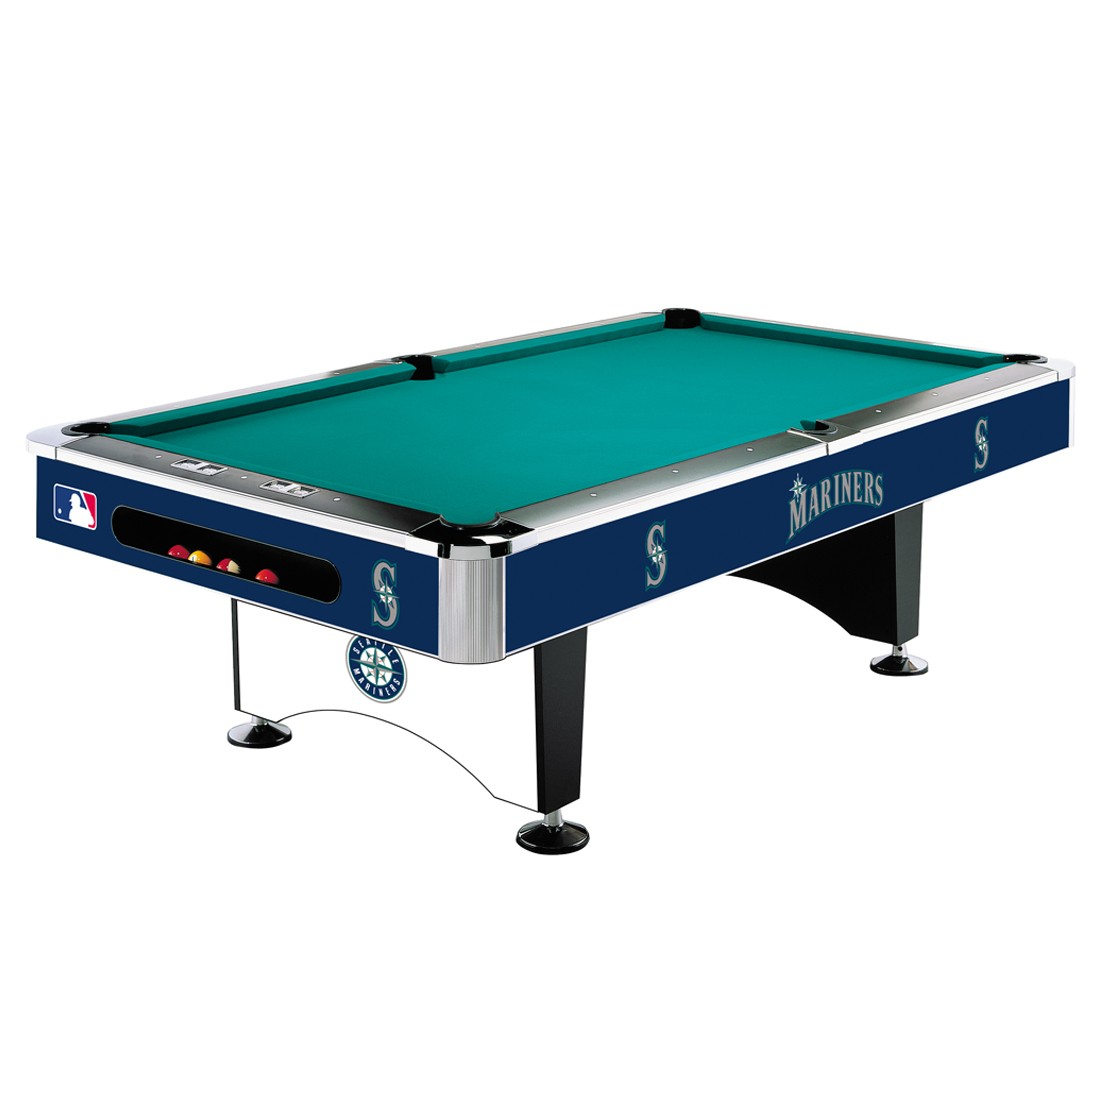 SEATTLE MARINERS 8-FT. POOL TABLE